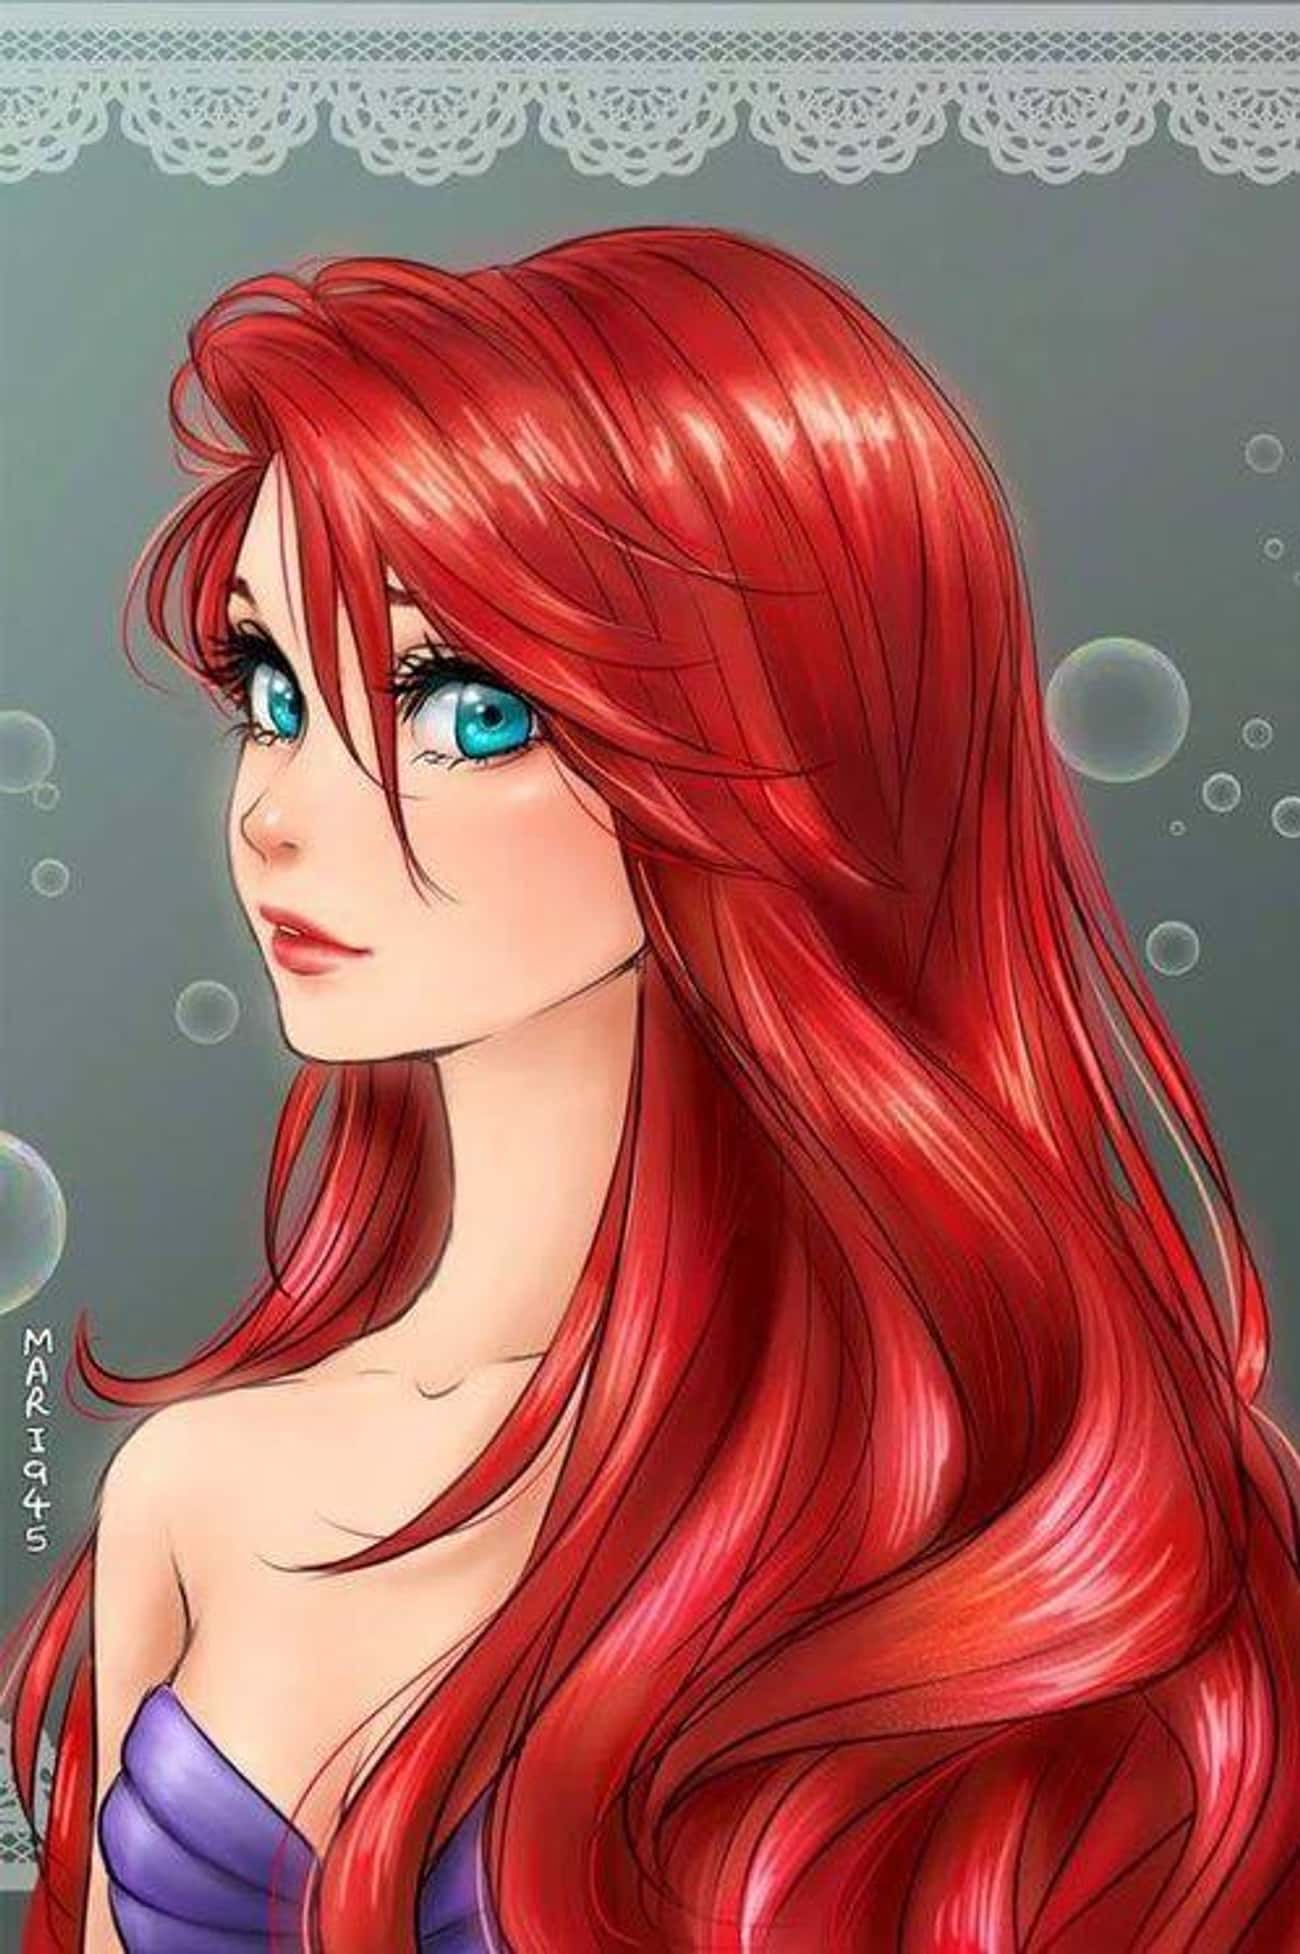 Ariel, The Little Mermaid is listed (or ranked) 1 on the list 15 Disney Princesses Drawn As Anime Characters